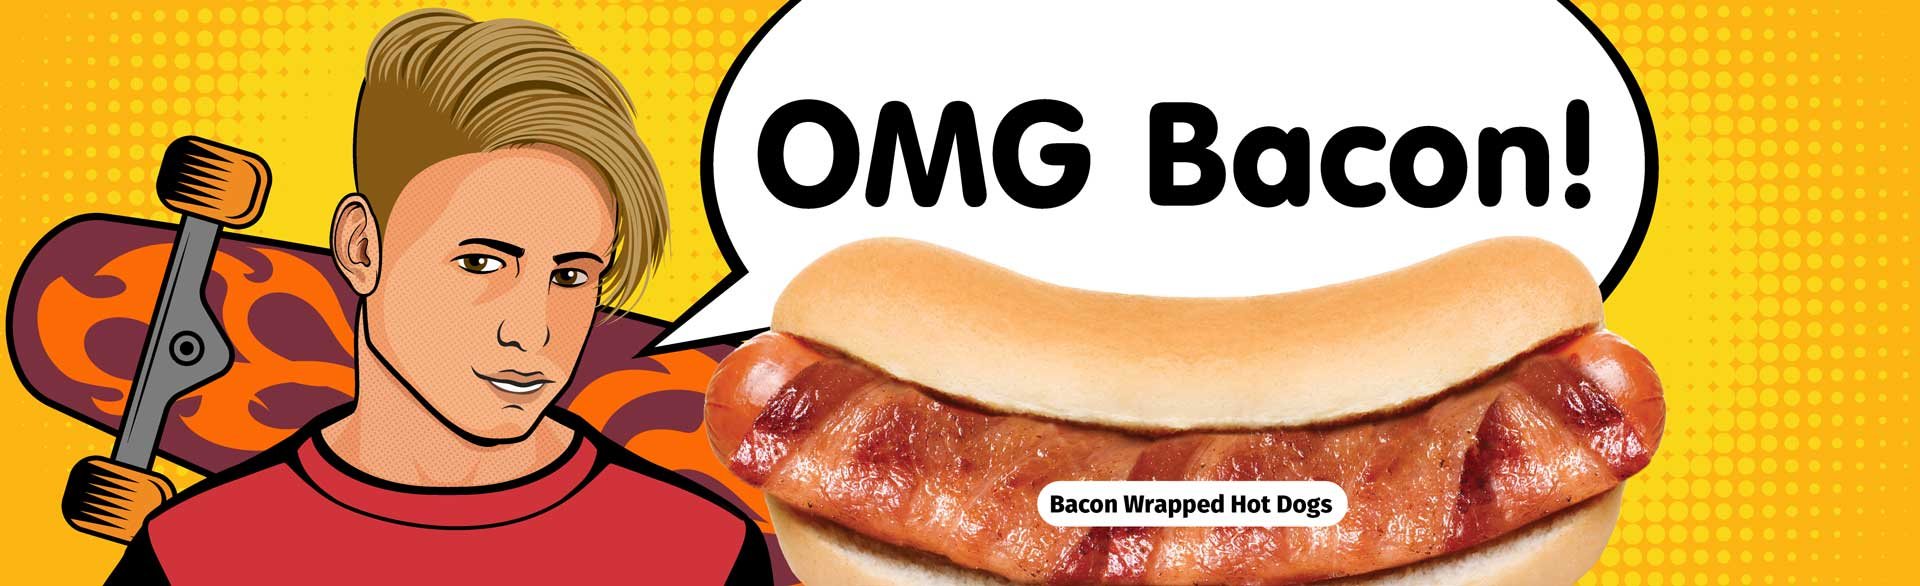 OMG Bacon! Bacon Wrapped Hot Dogs